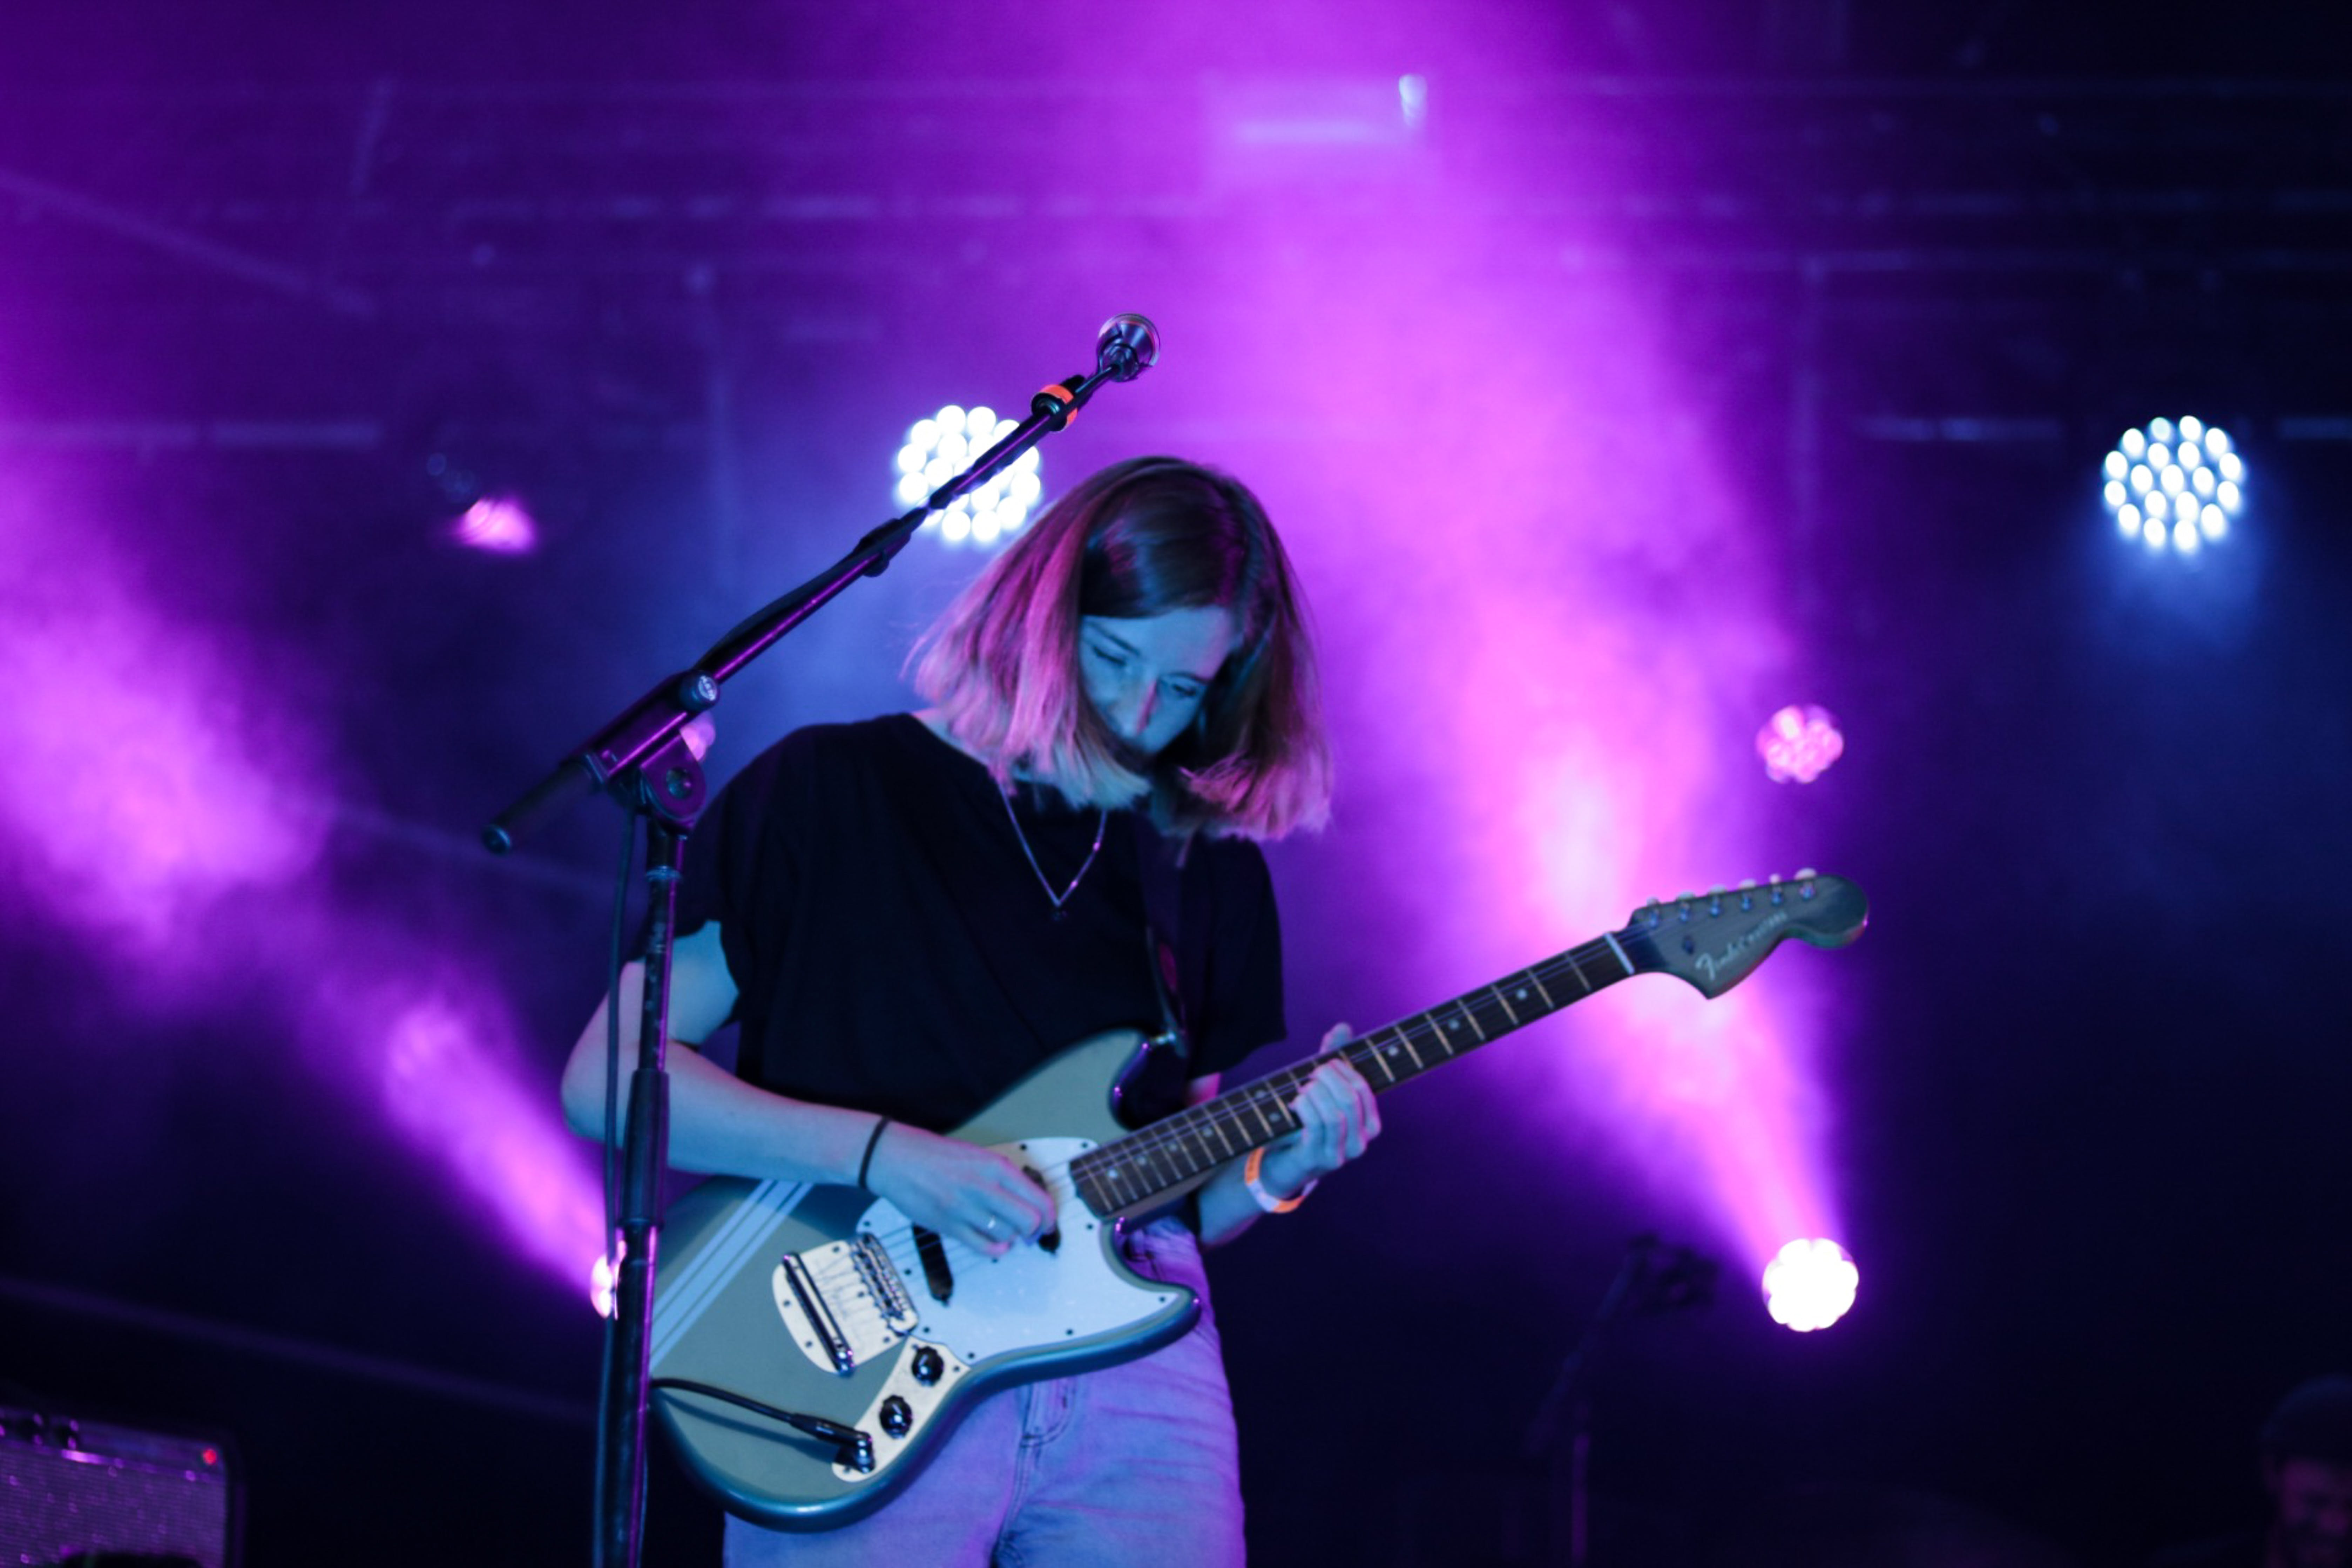 Photo Of Female Guitarist Performing On Stage